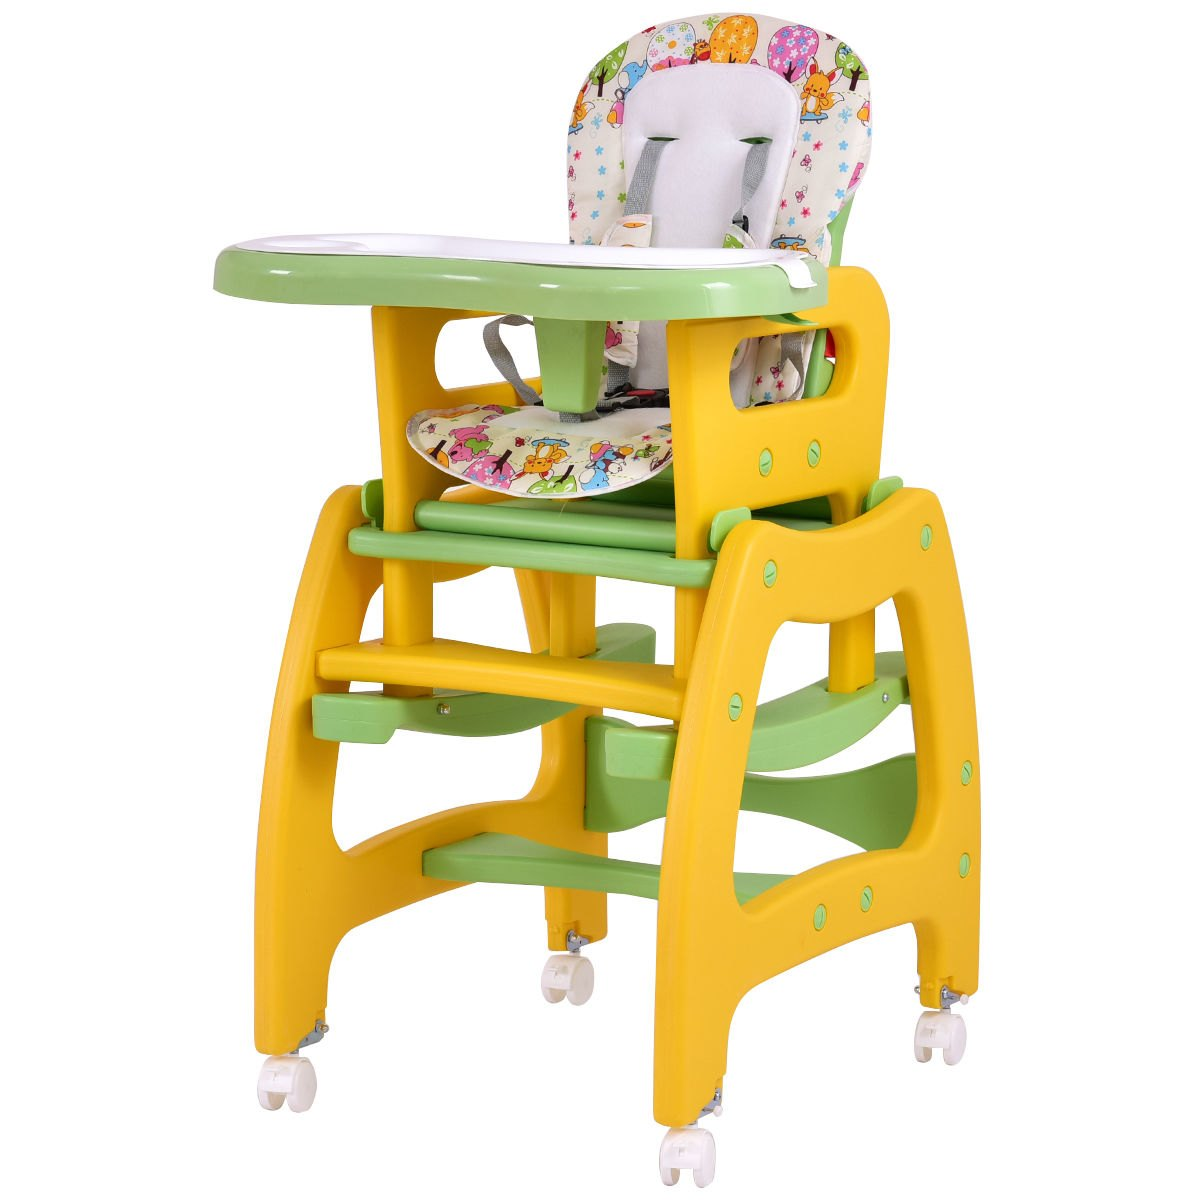 Costway 3 in 1 Baby High Chair Convertible Play Table Seat Booster Toddler  Feeding Tray 0